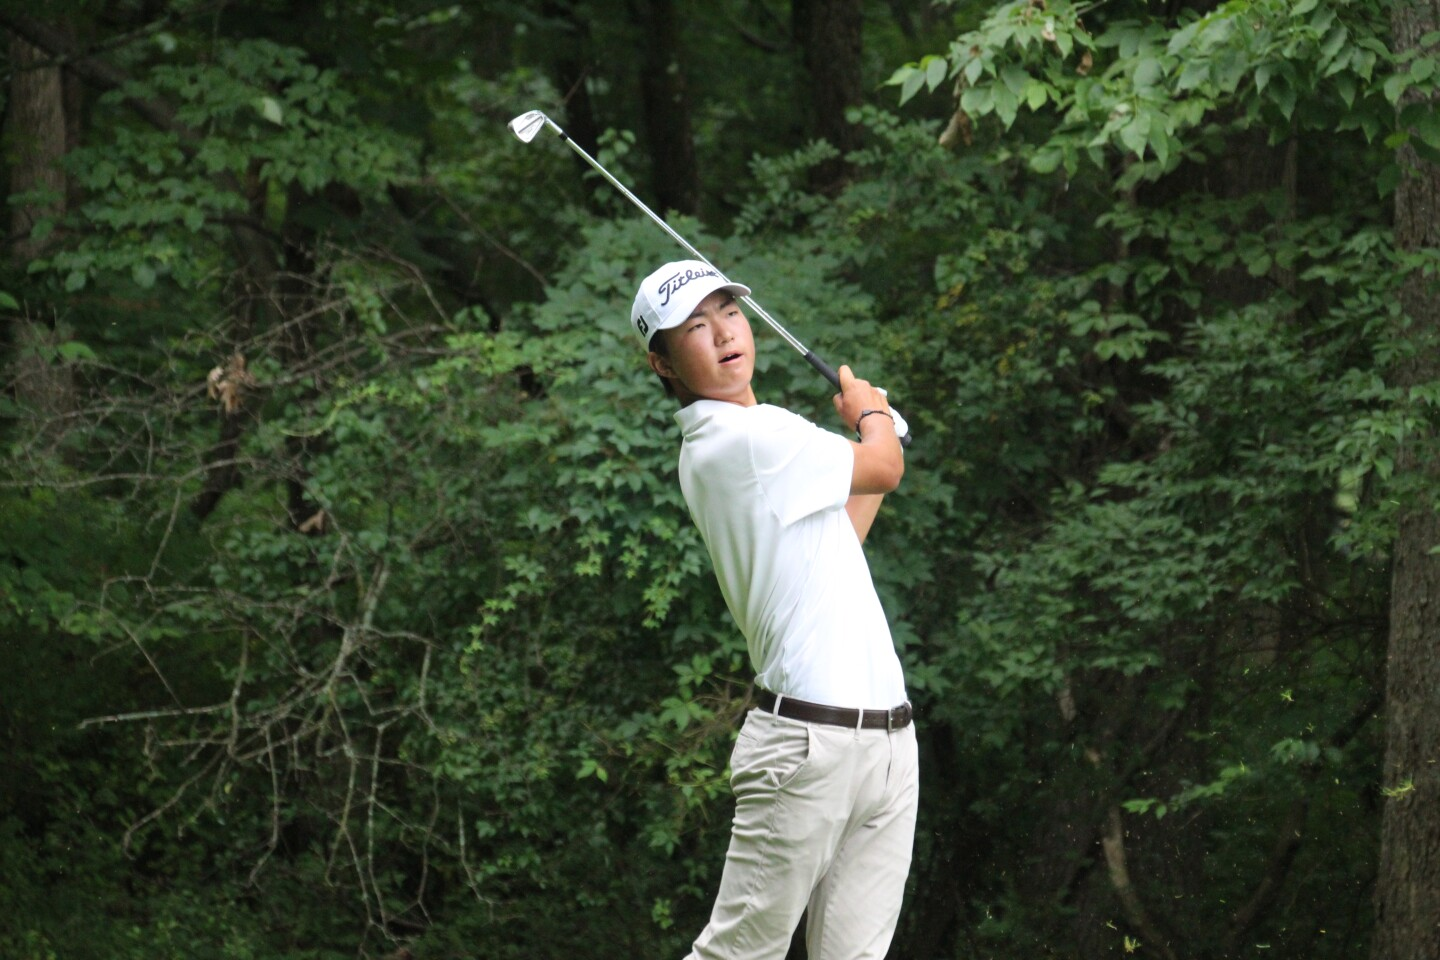 Bryan Lee - 2020 - UHY Celedon Junior Championshp hosted by Marina Alex.JPG